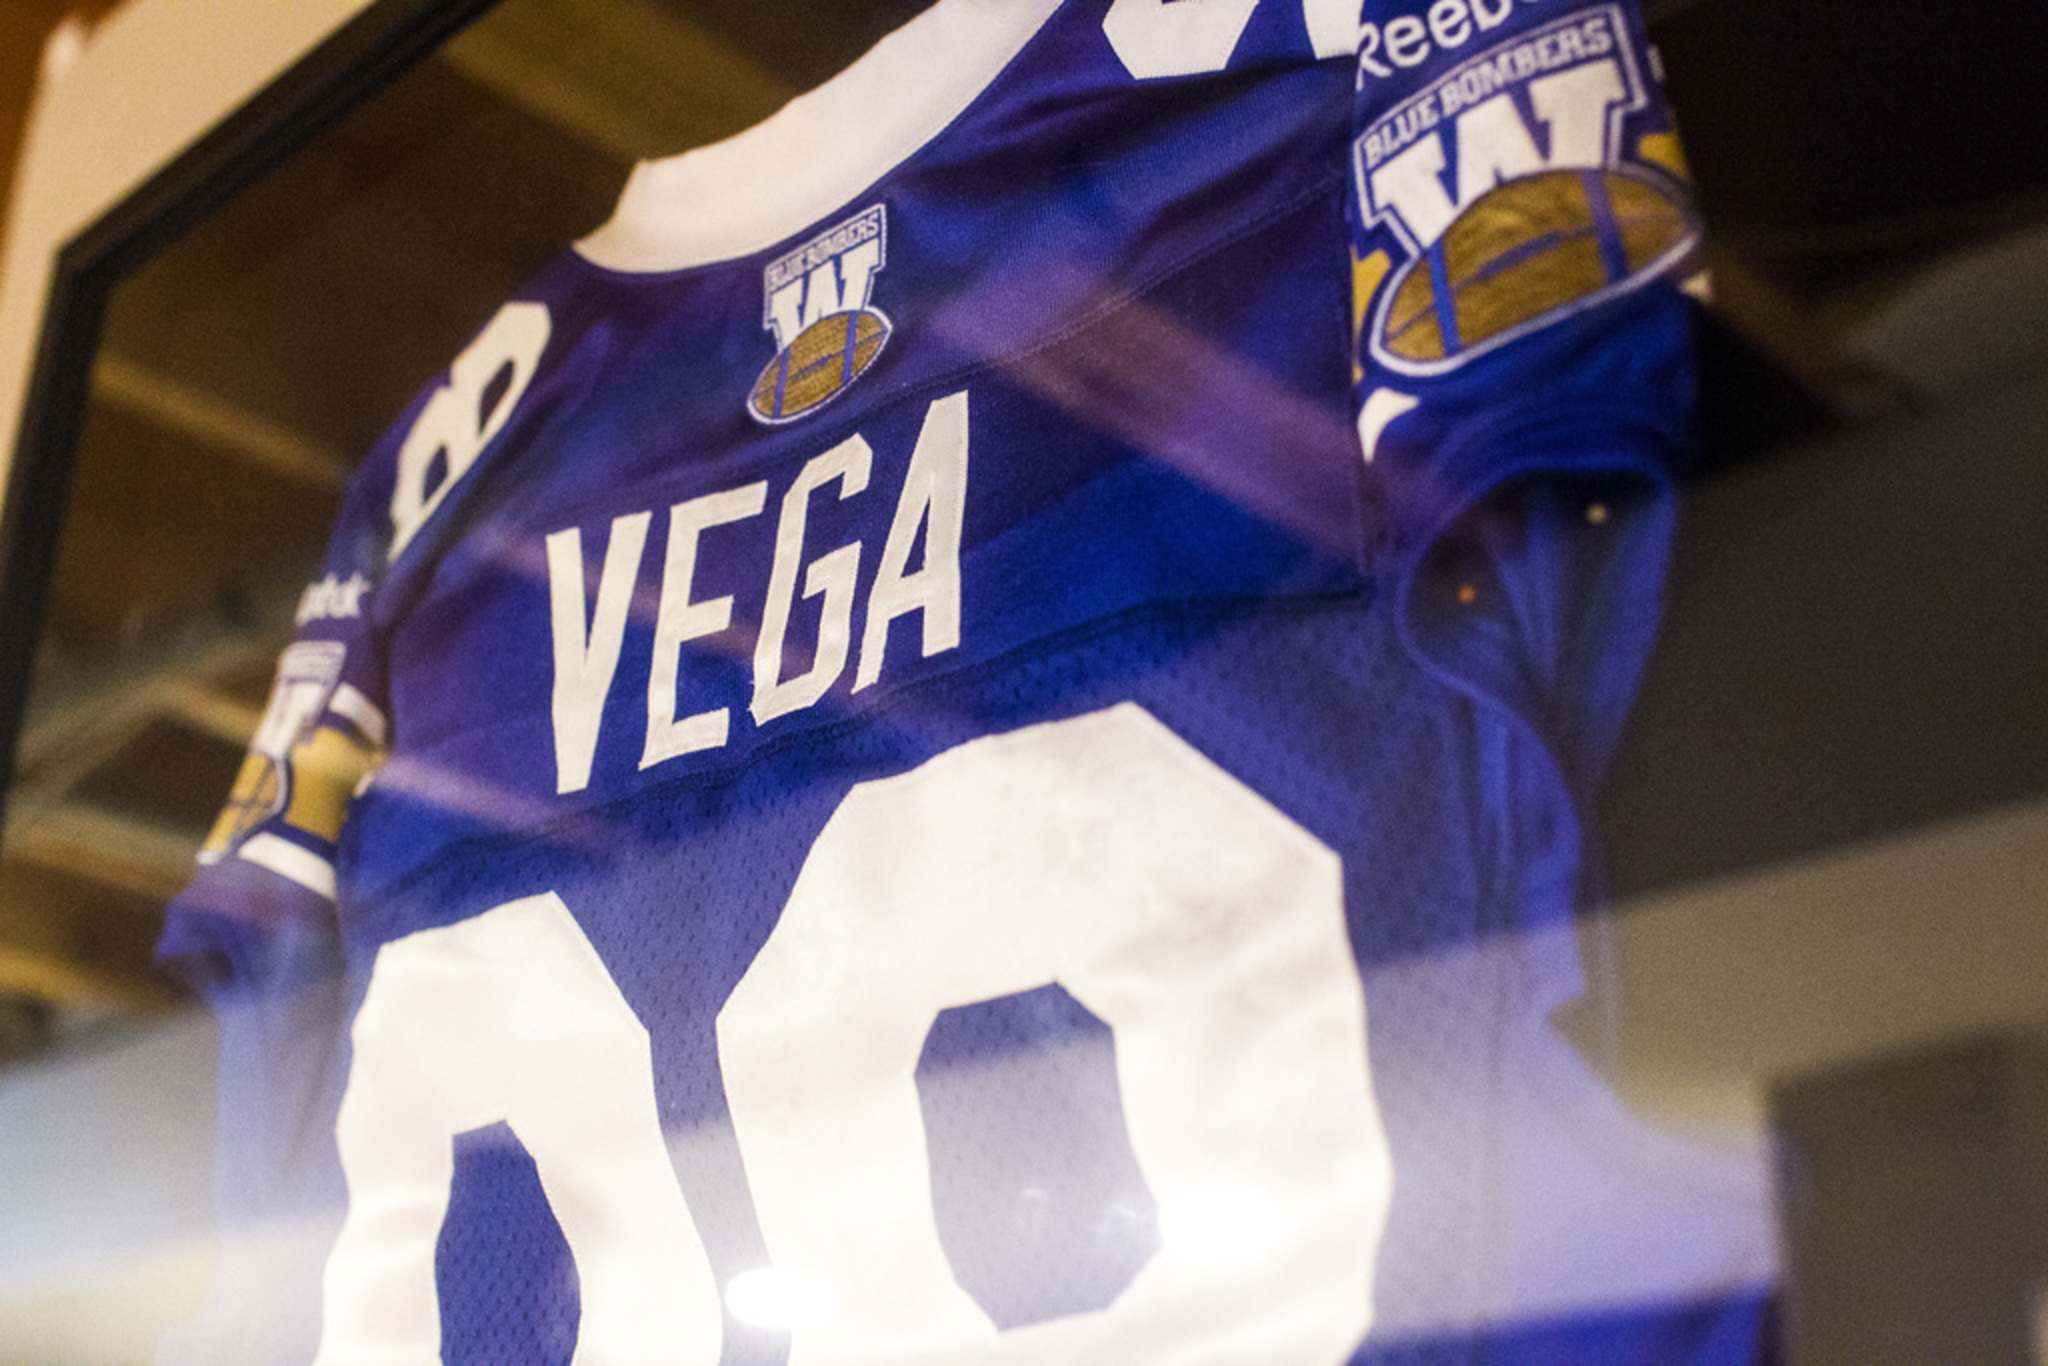 In 2017, Vega signed a one-day contract with the Blue Bombers, at which point he announced his retirement from the game.